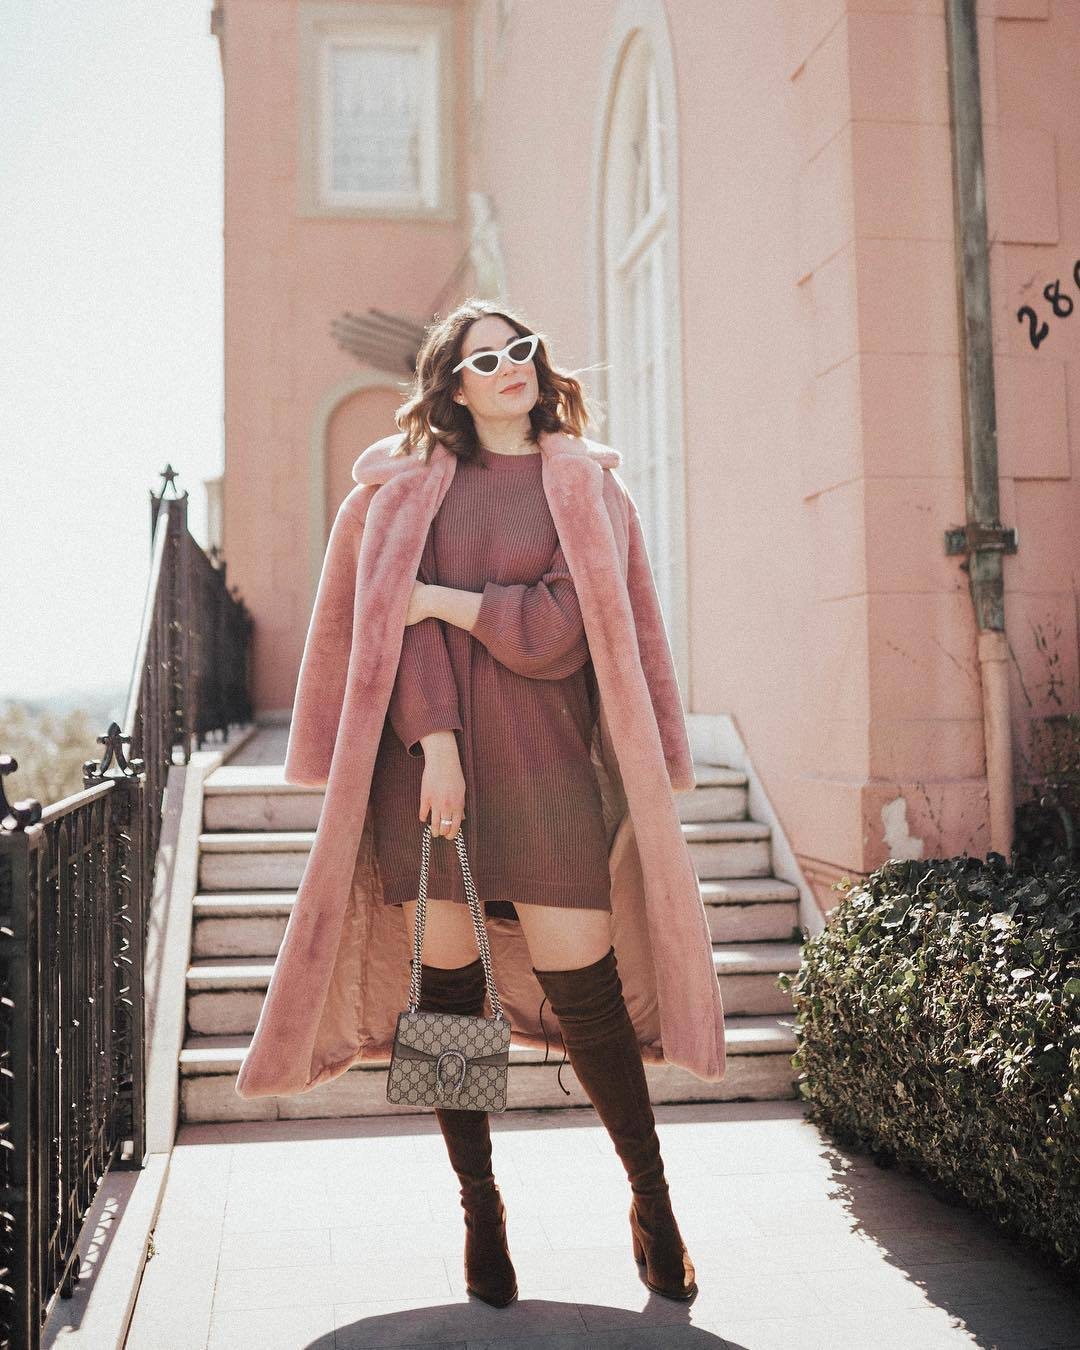 sweater sweater dress mini dress knitted dress over the knee boots suede boots gucci bag pink coat teddy bear coat